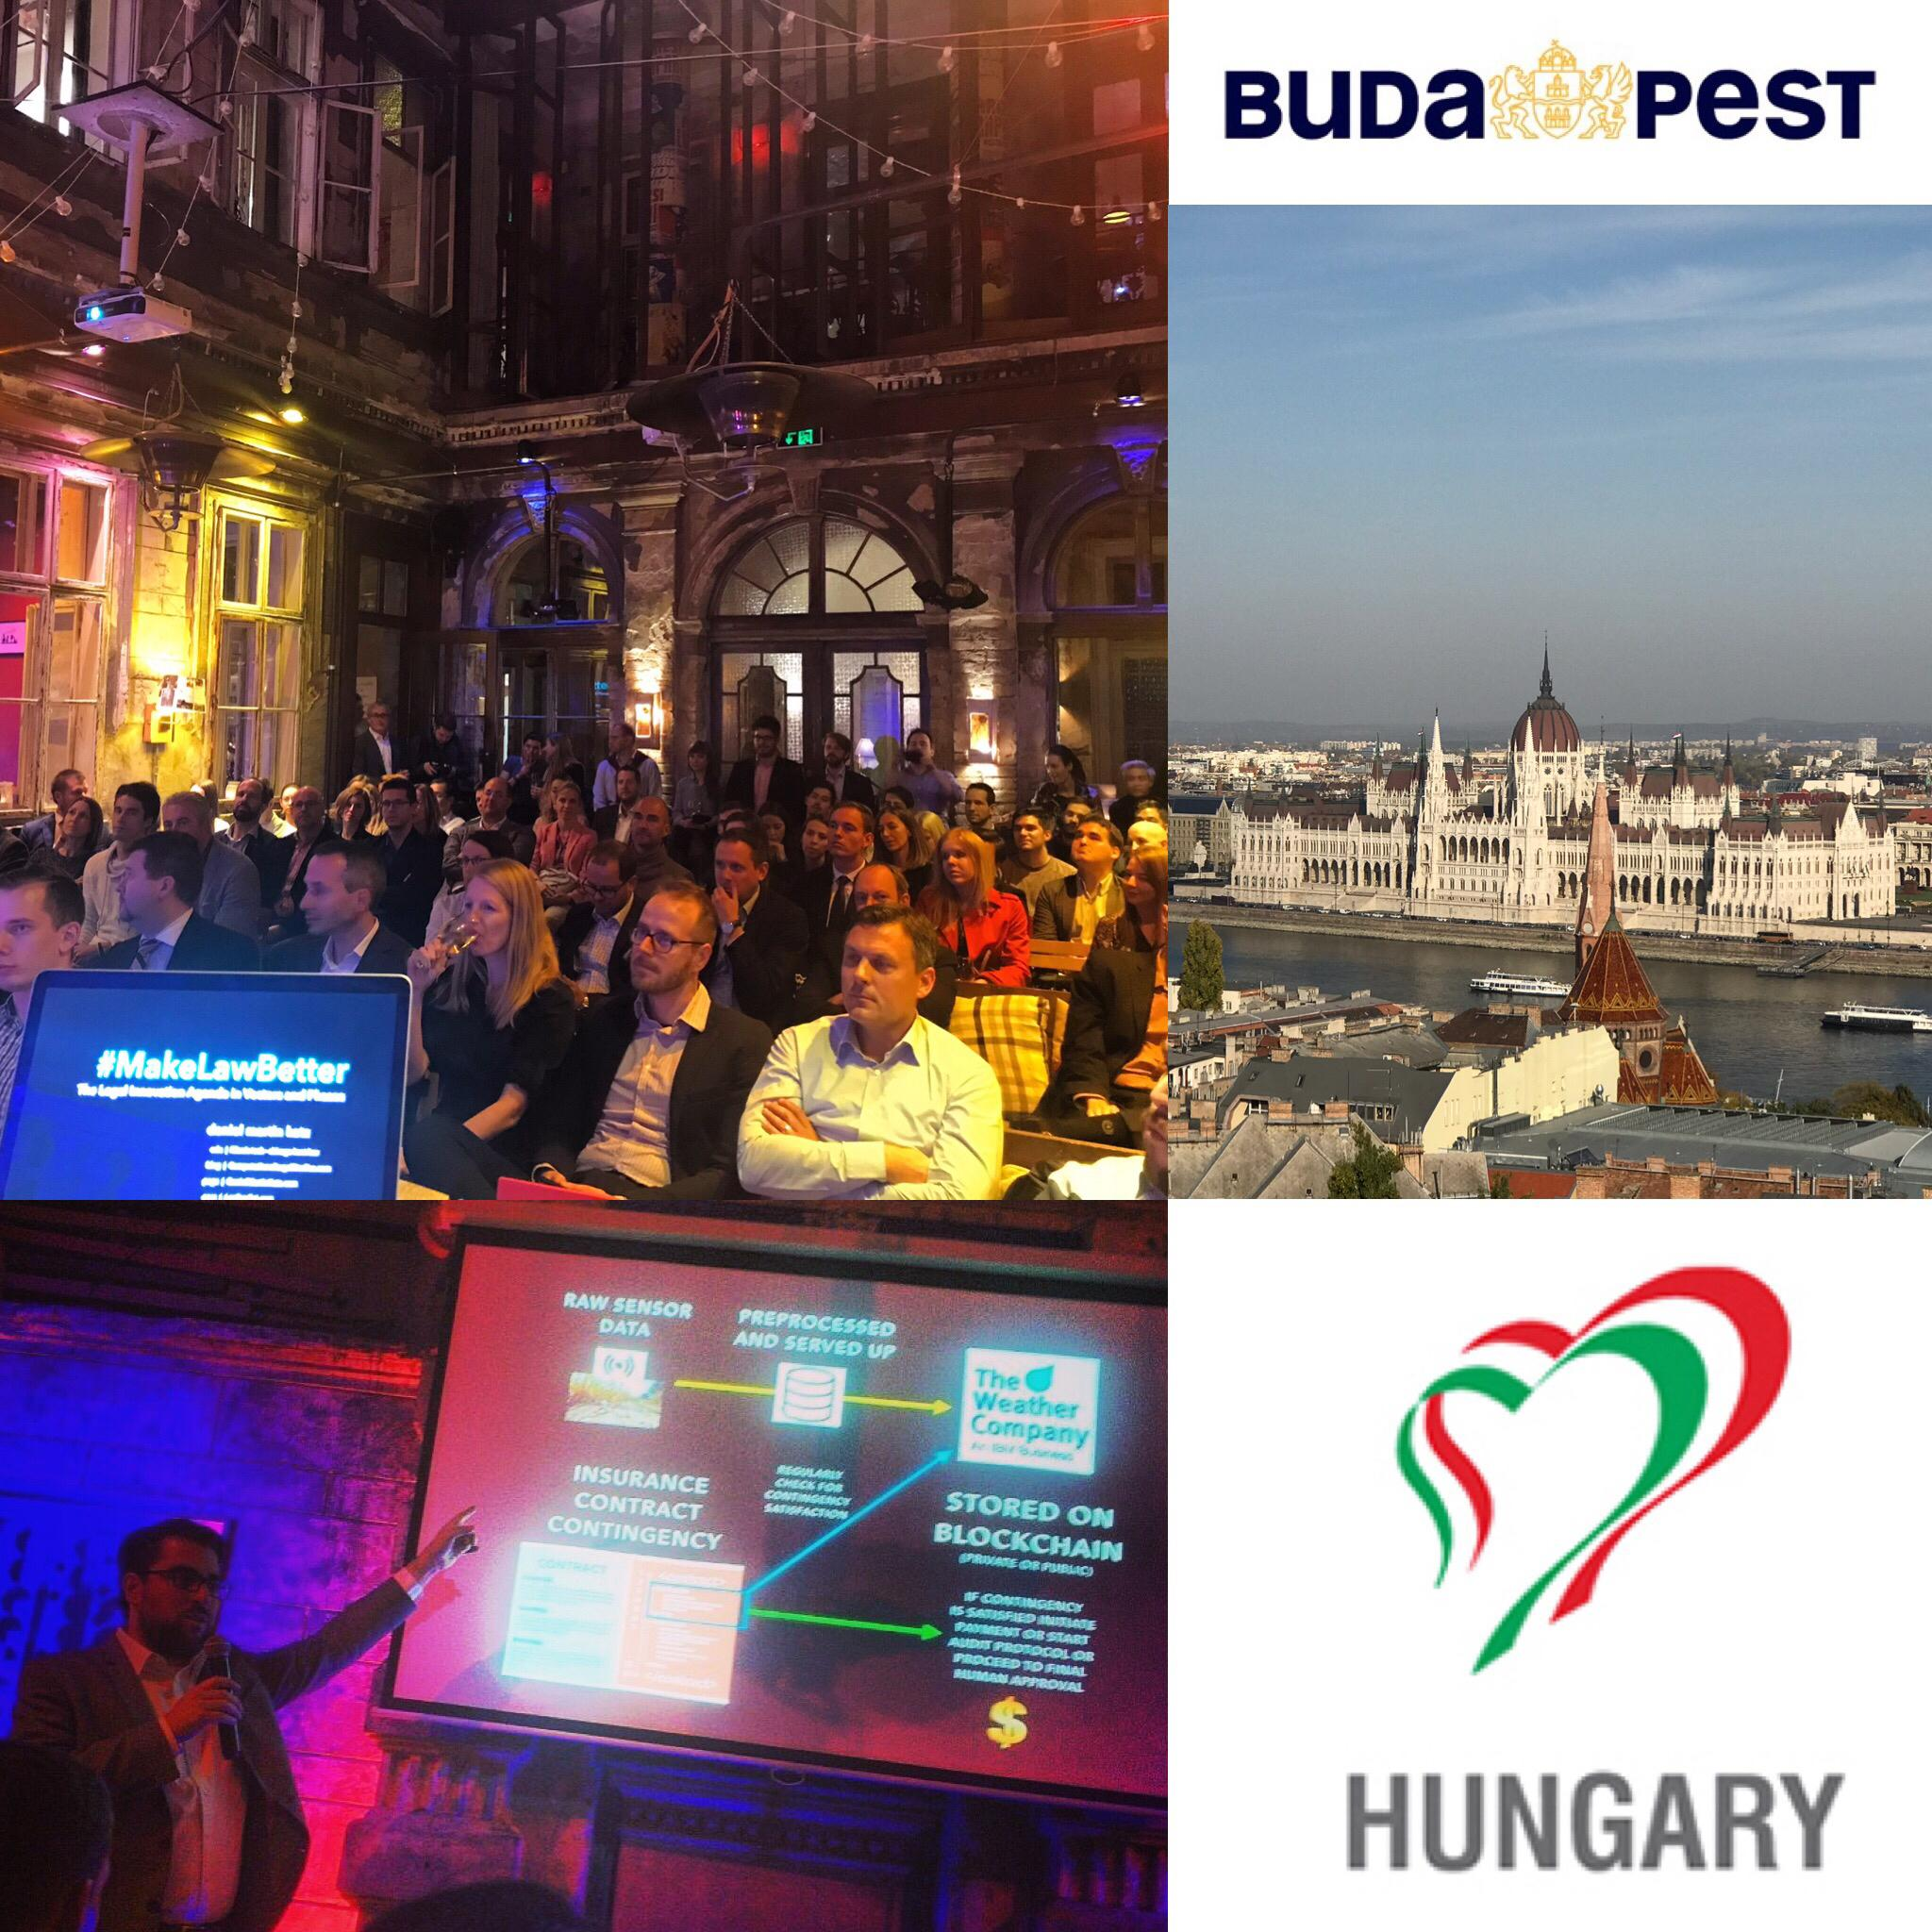 Budapest legal tech event